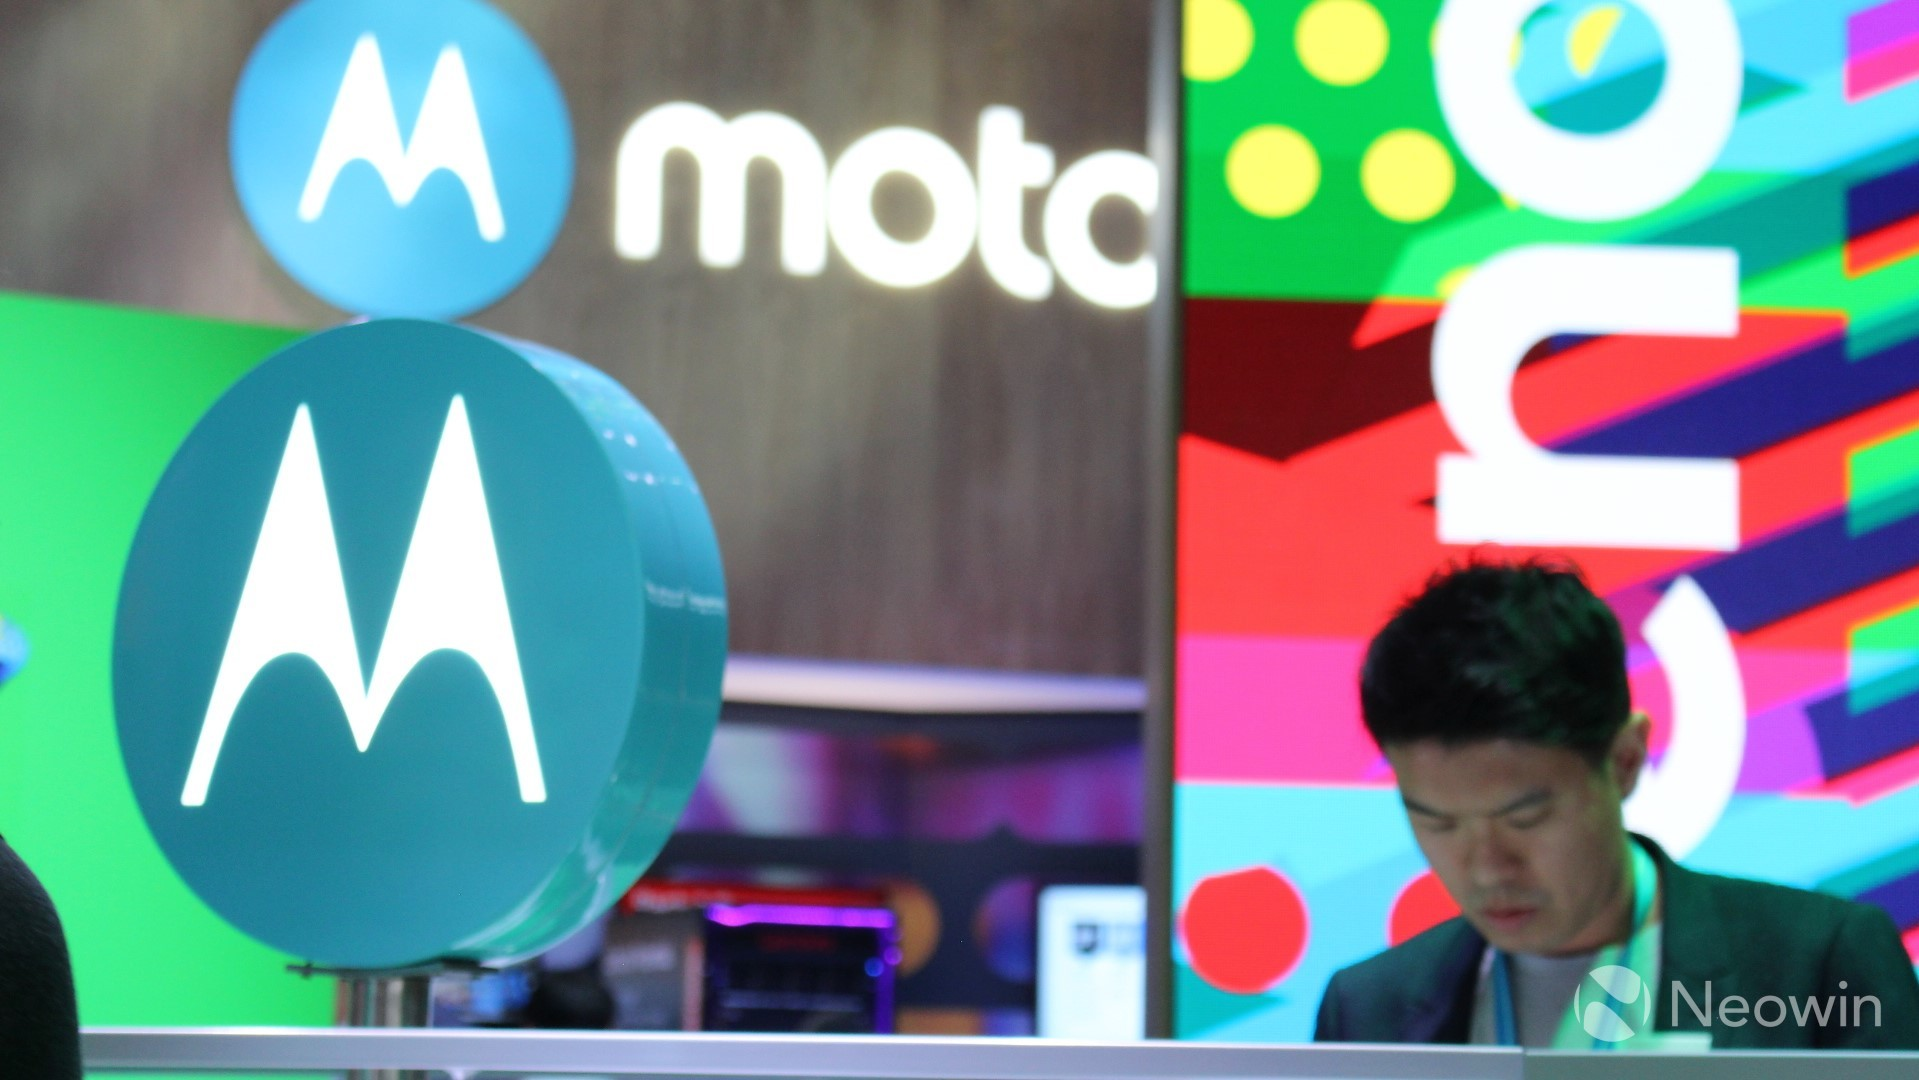 A brand new Motorola Android tablet might be released soon